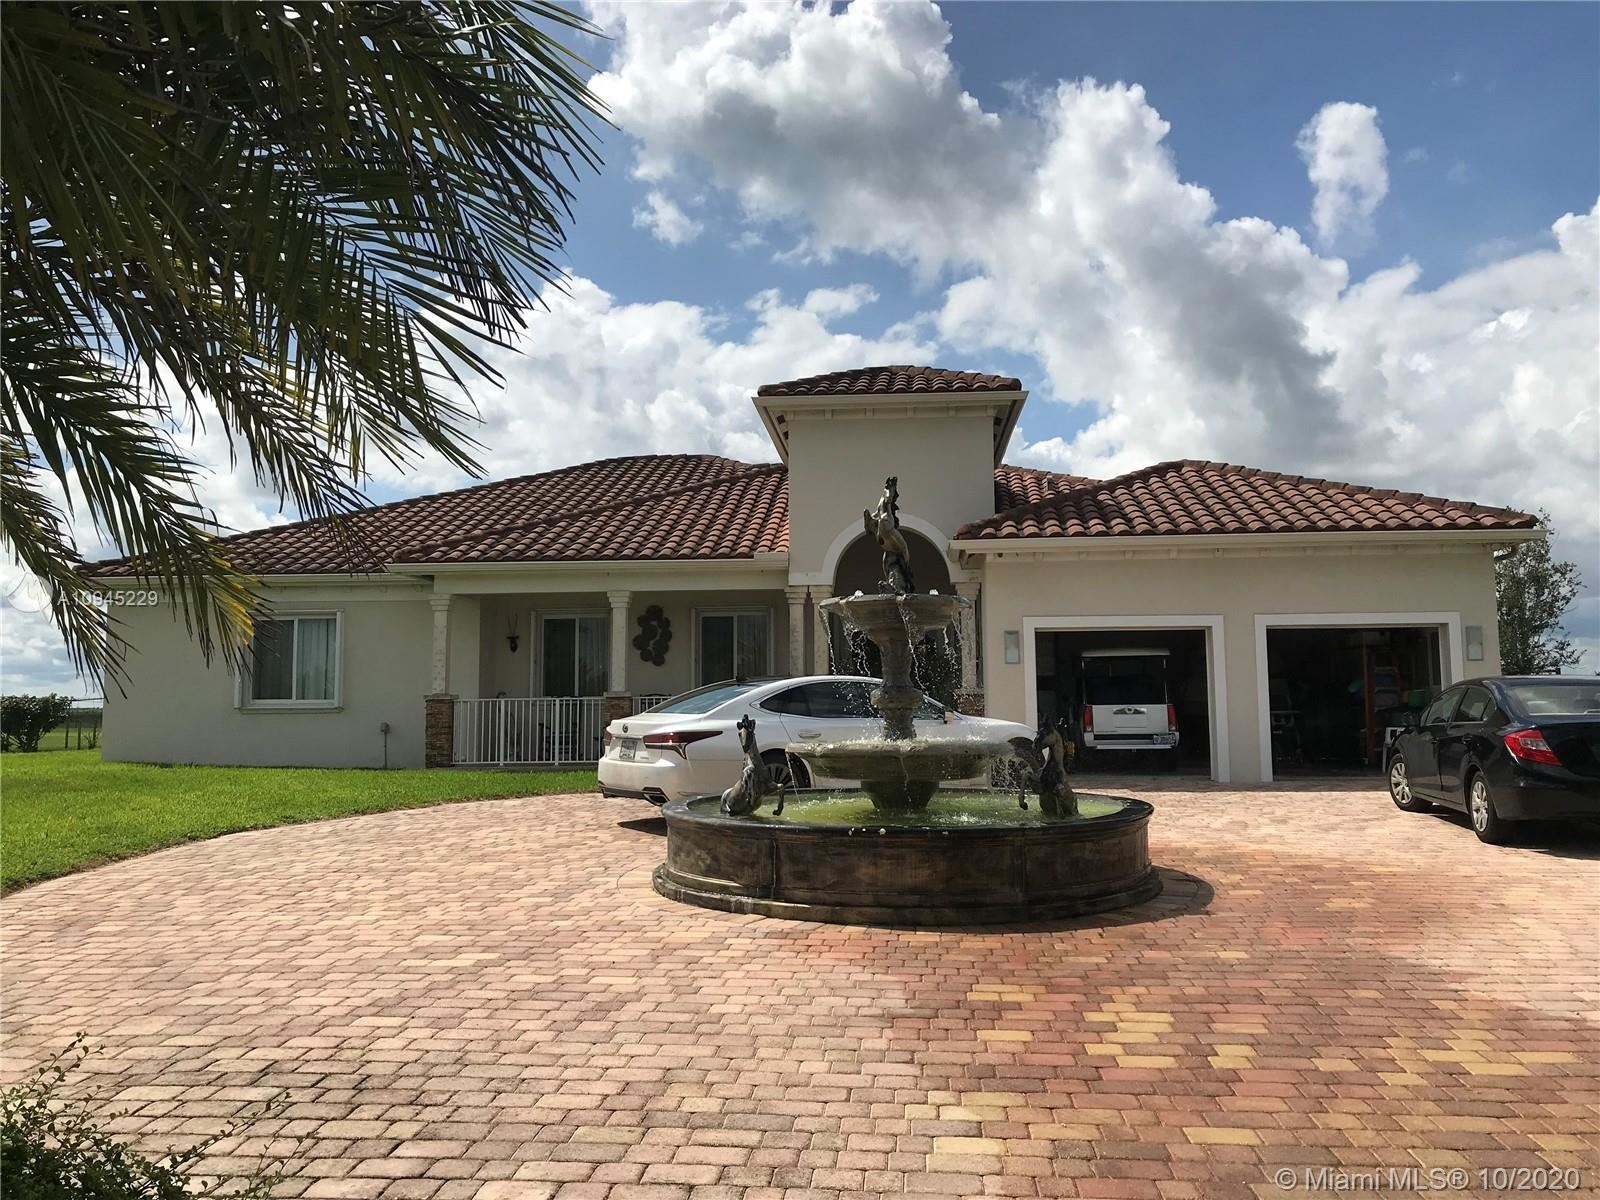 35650 SW 218th Ave, Homestead, FL 33034 - #: A10945229